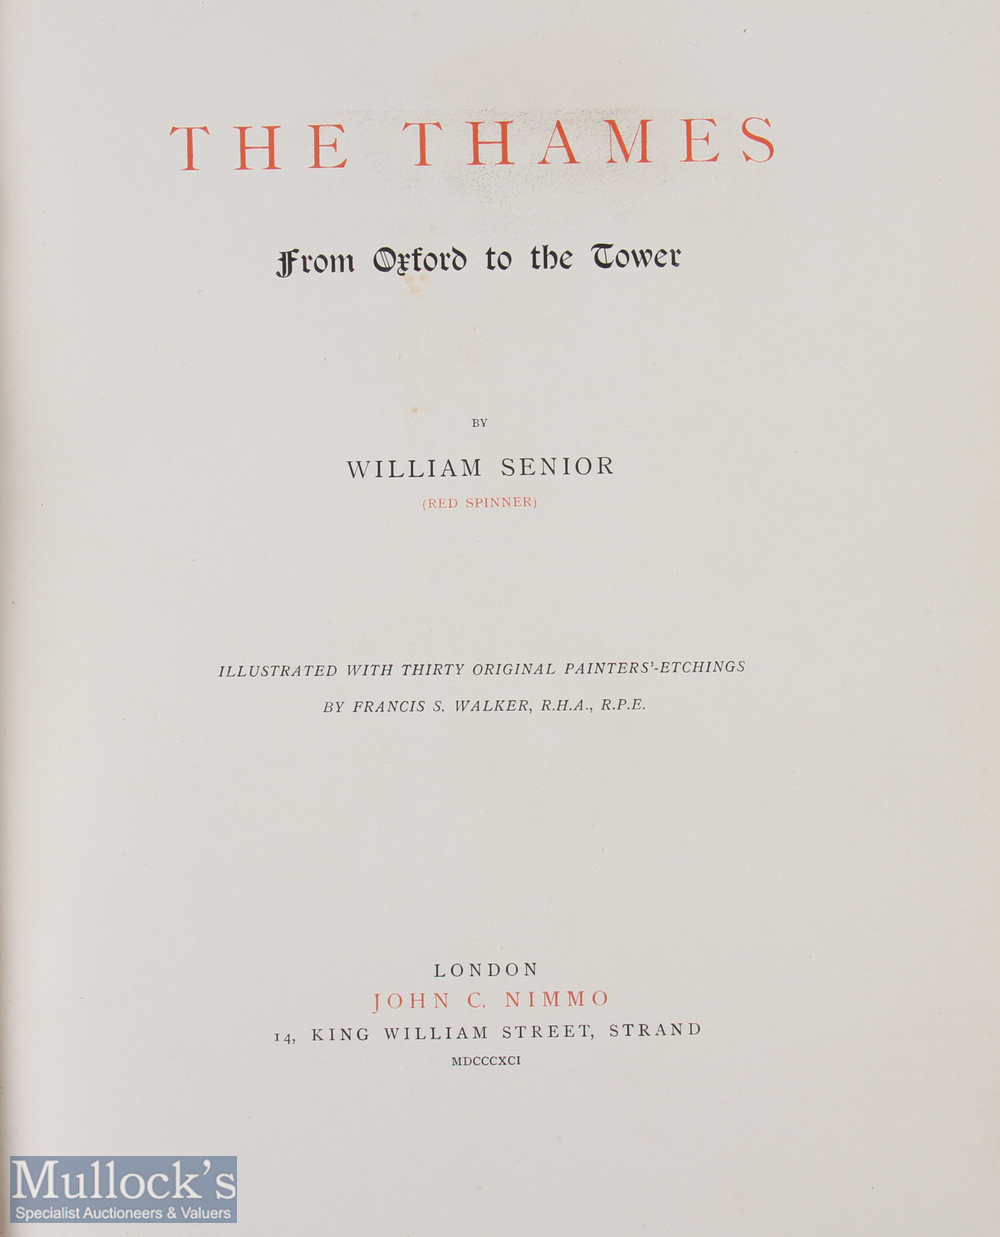 """Senior, William (Red Spinner) – """"The Thames from Oxford to the Tower"""" 1891 limited edition of 350, - Image 2 of 2"""